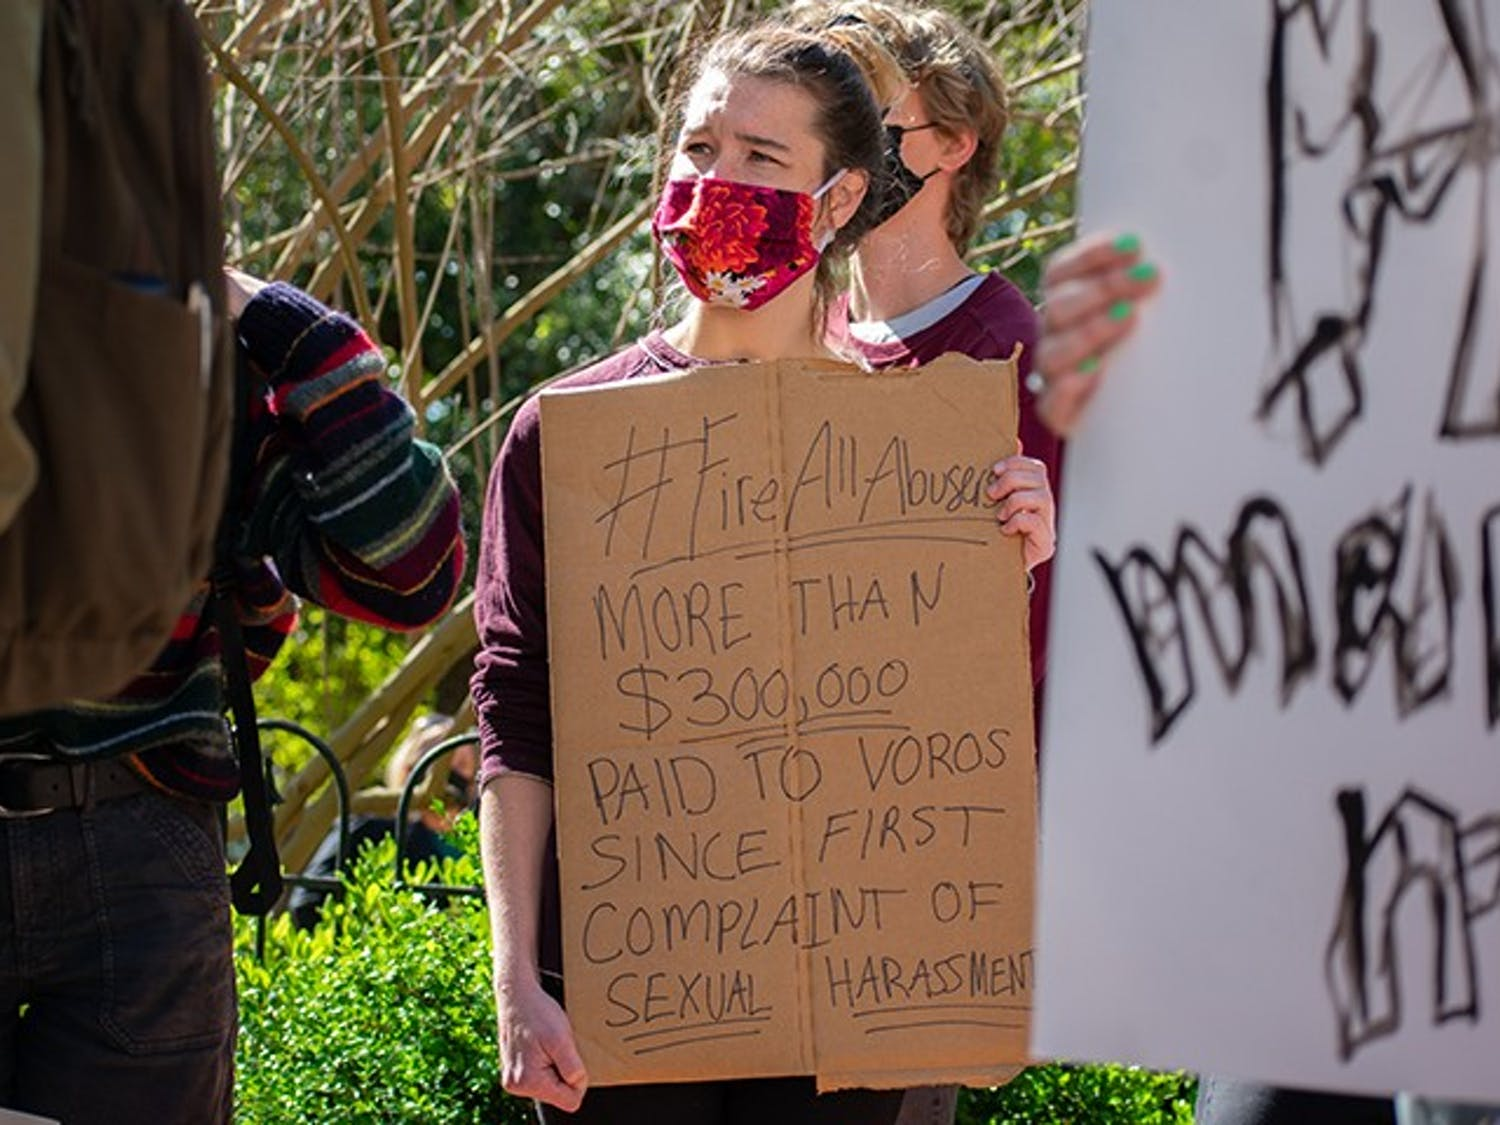 Students bring signs to protest the university's lack of response toward the numerous acts of sexual assault and violence committed by David Voros and several other staff members.